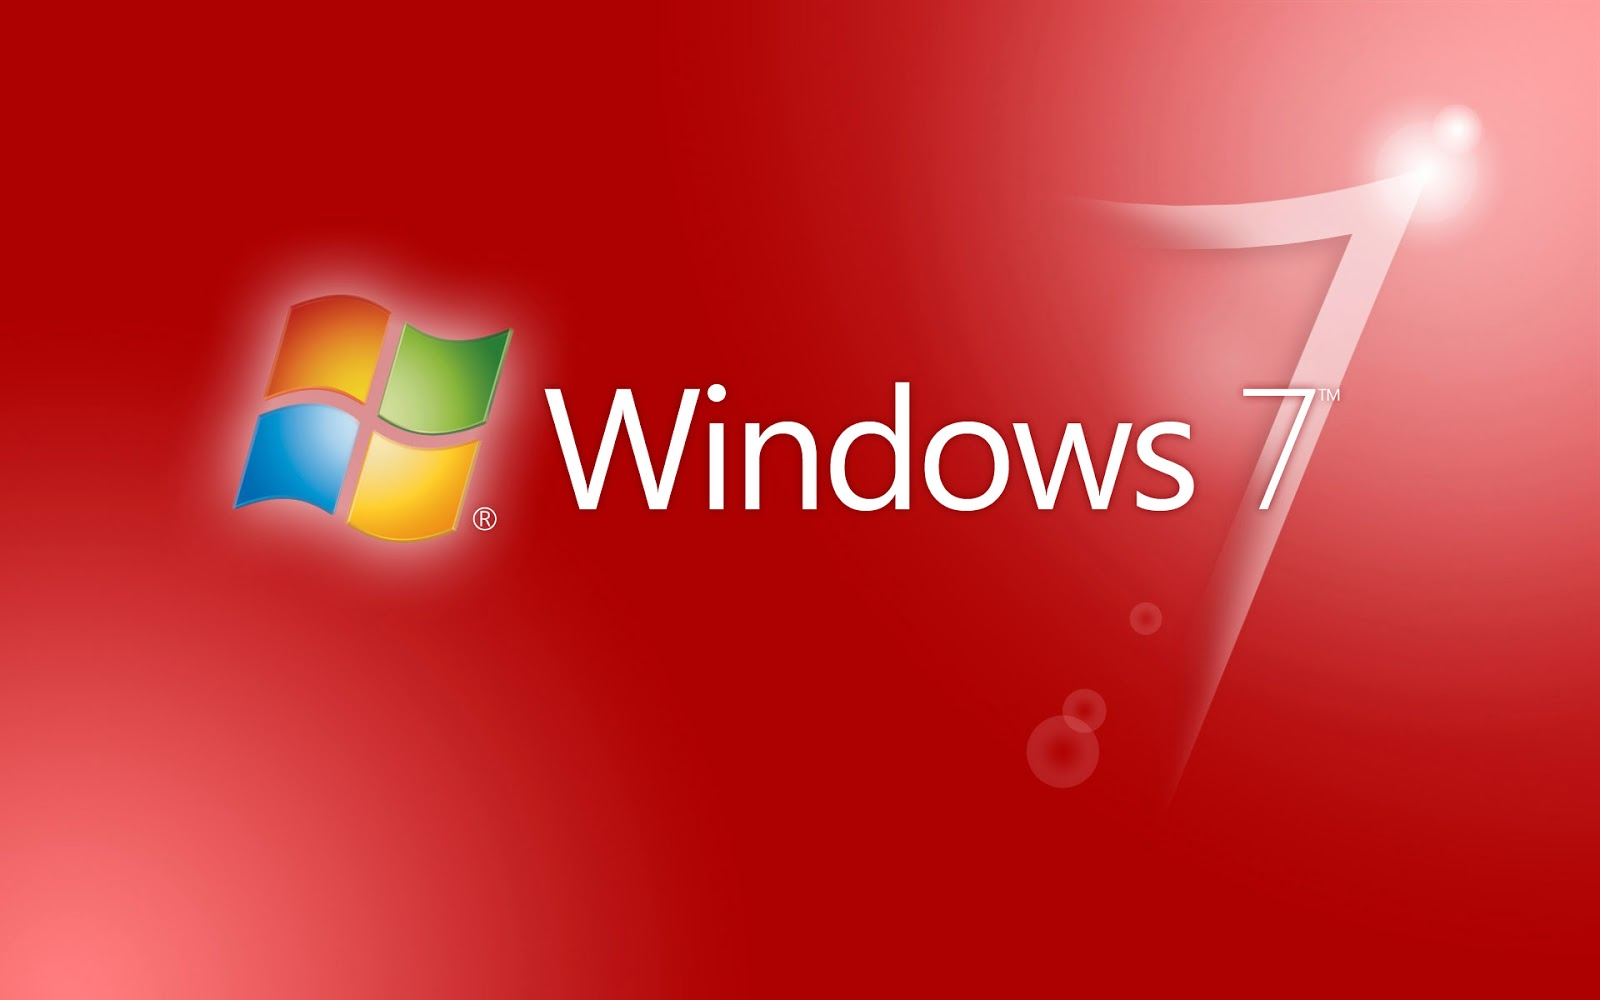 Fond Ecran Windows 7 hd